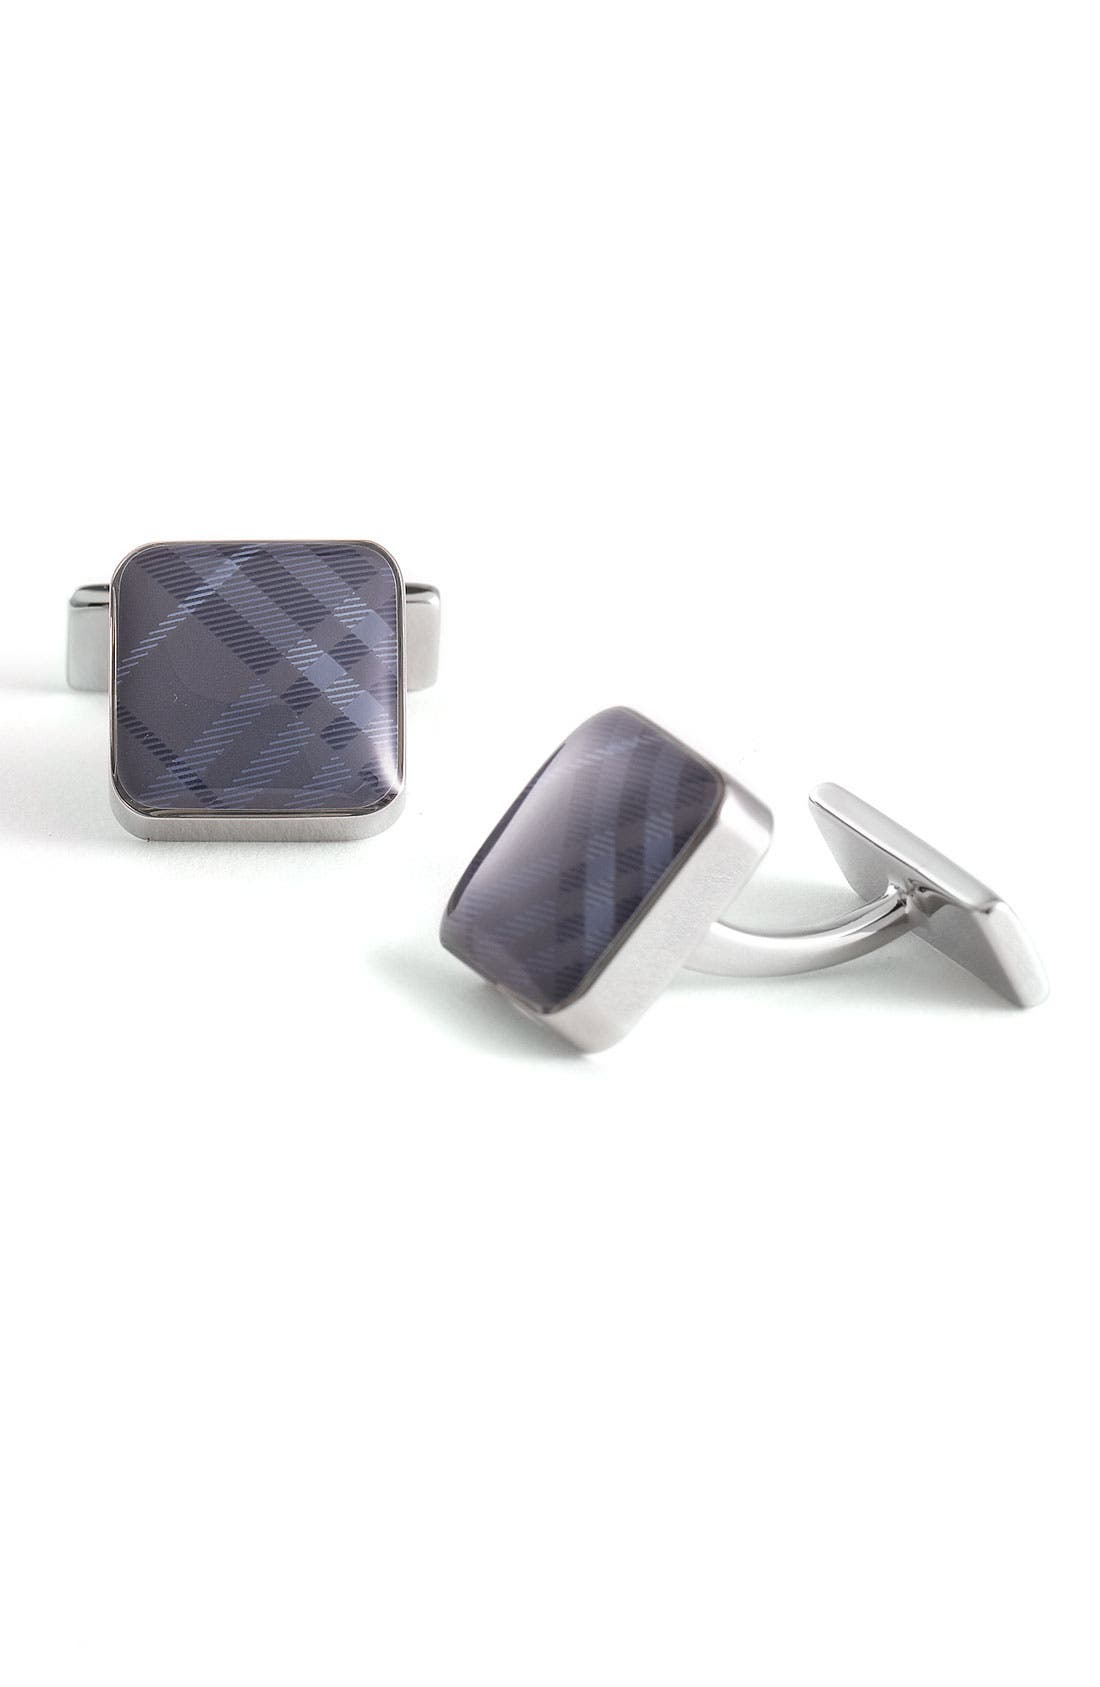 Main Image - Burberry Check Square Cuff Links